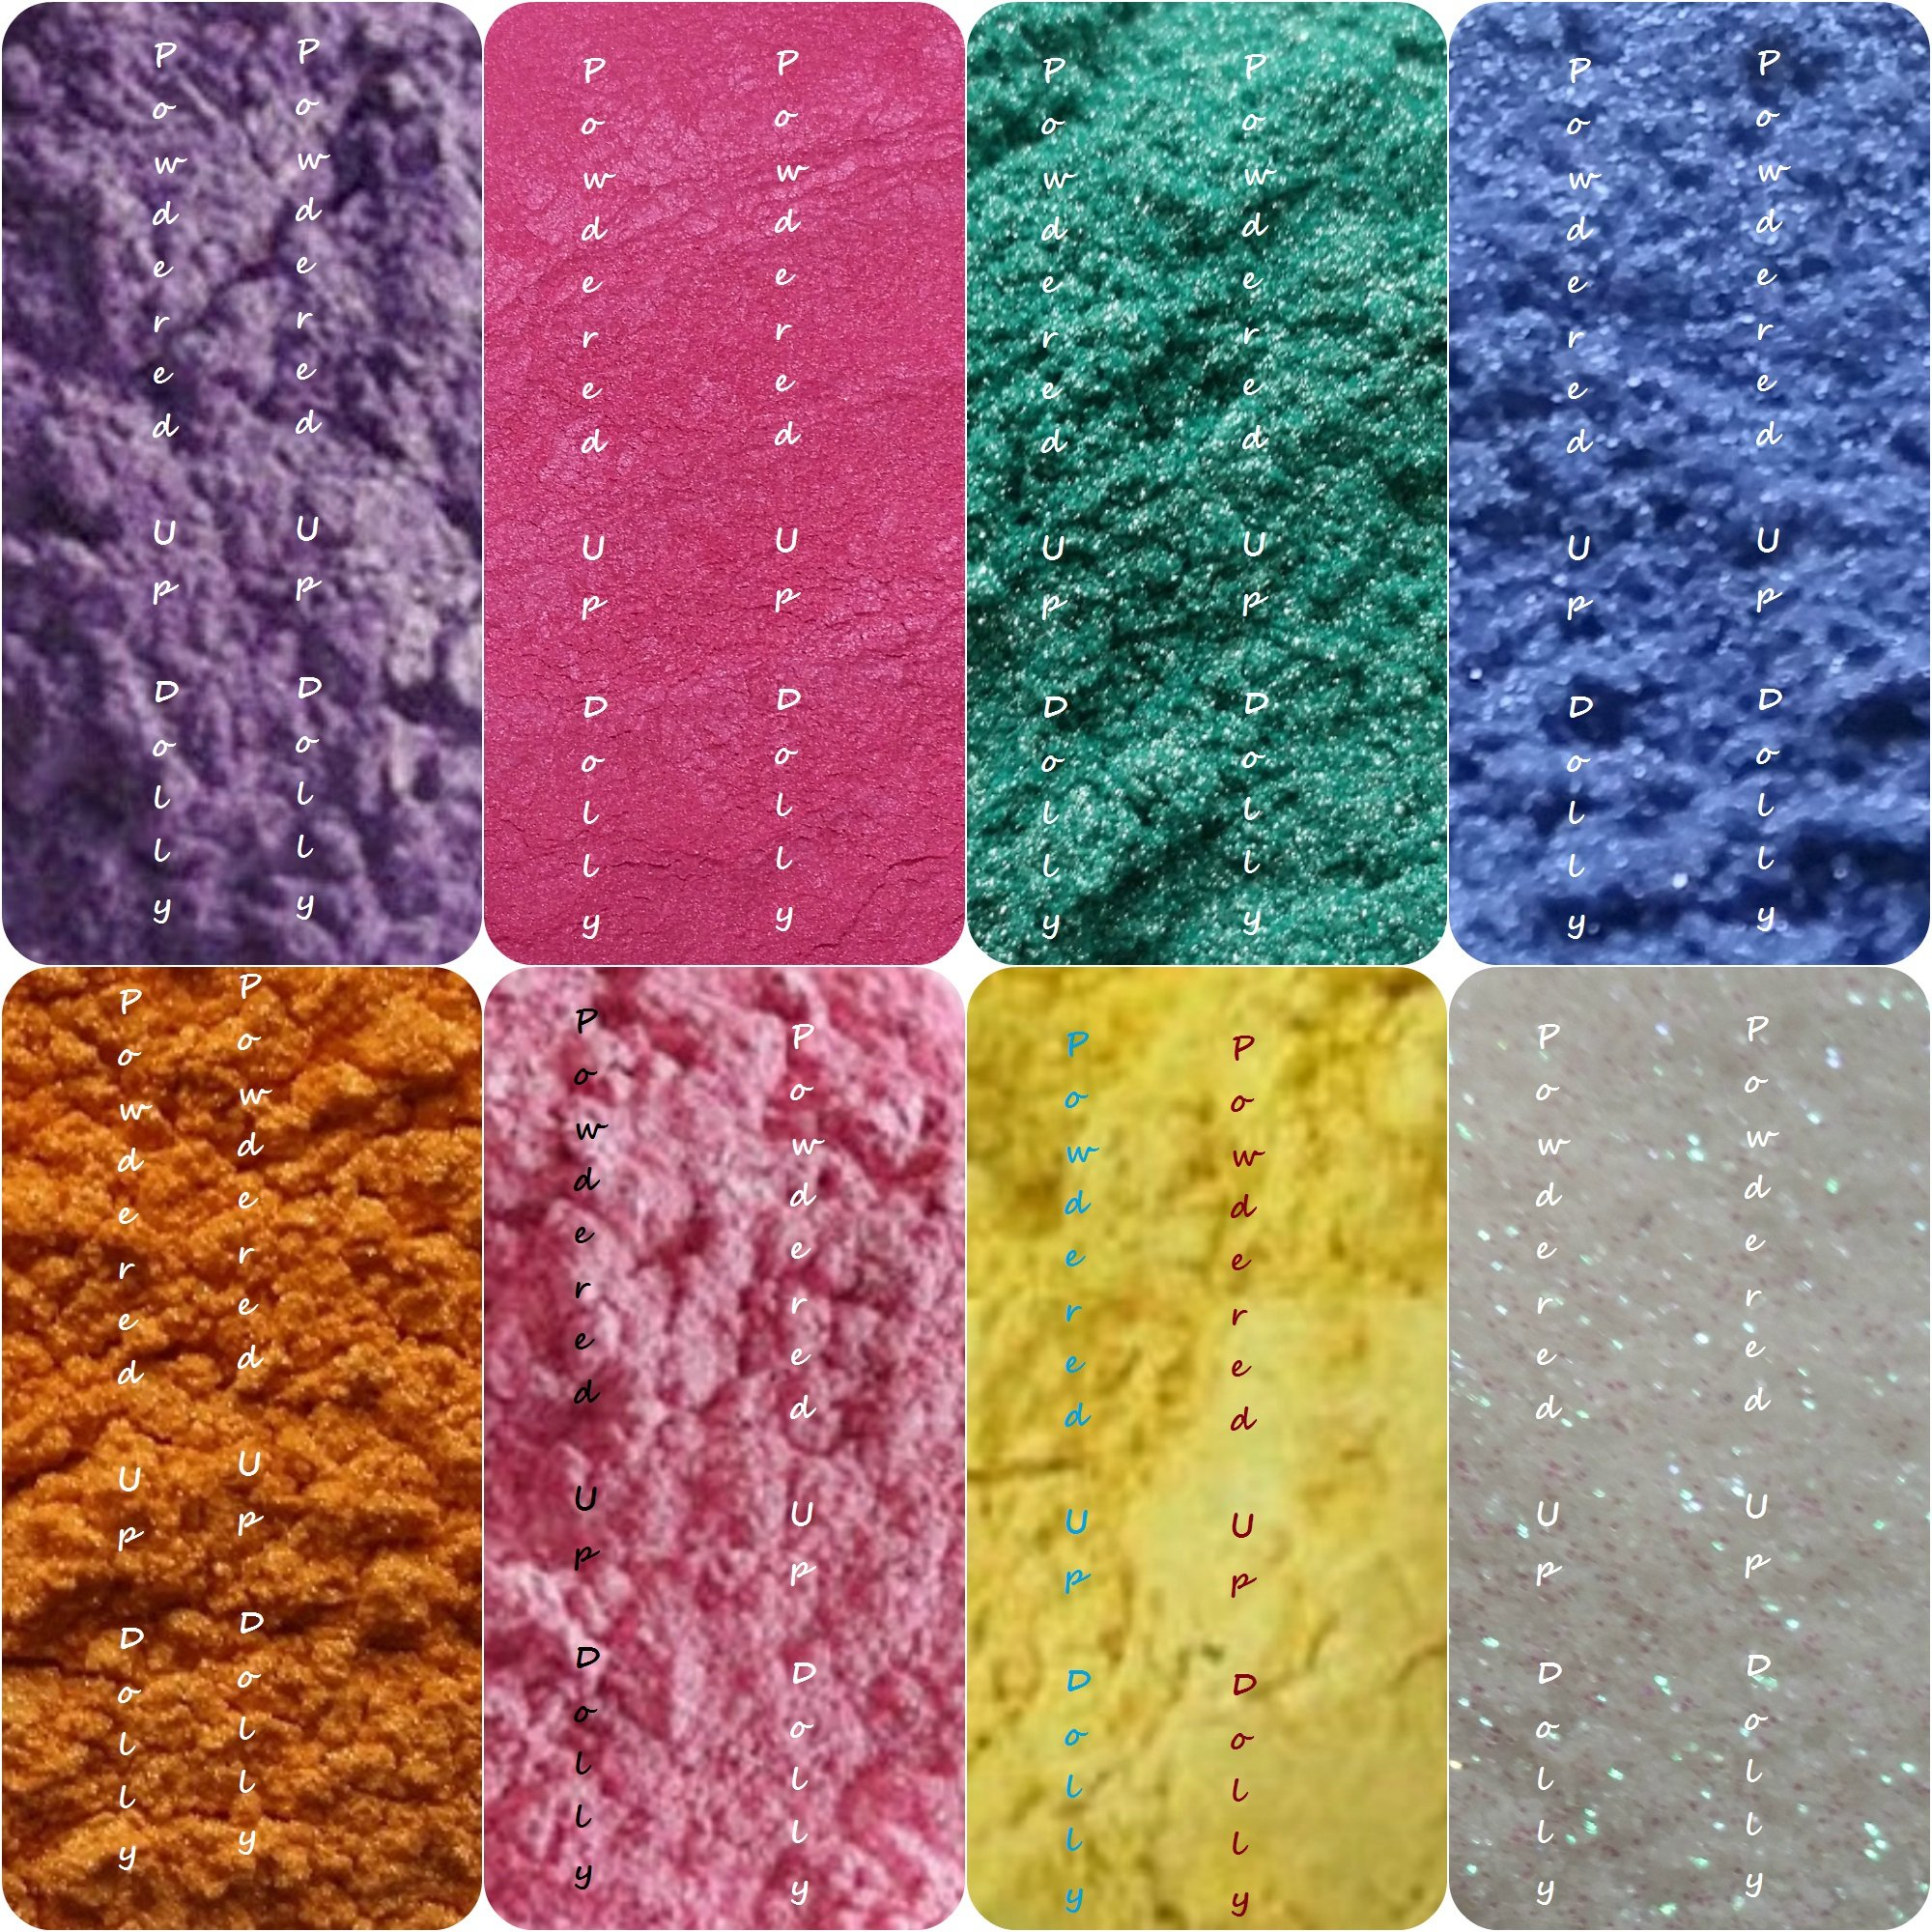 160 Grams Mica Colorants Lot of 8 Cosmetic 20g Each Soap and Craft Color Pigment Powders Teal Yellow Pink Orange Purple Hot Magenta Pink Fuchia GLITTERING White Blue in Bags Set by Powdered Up Dolly (Image #1)